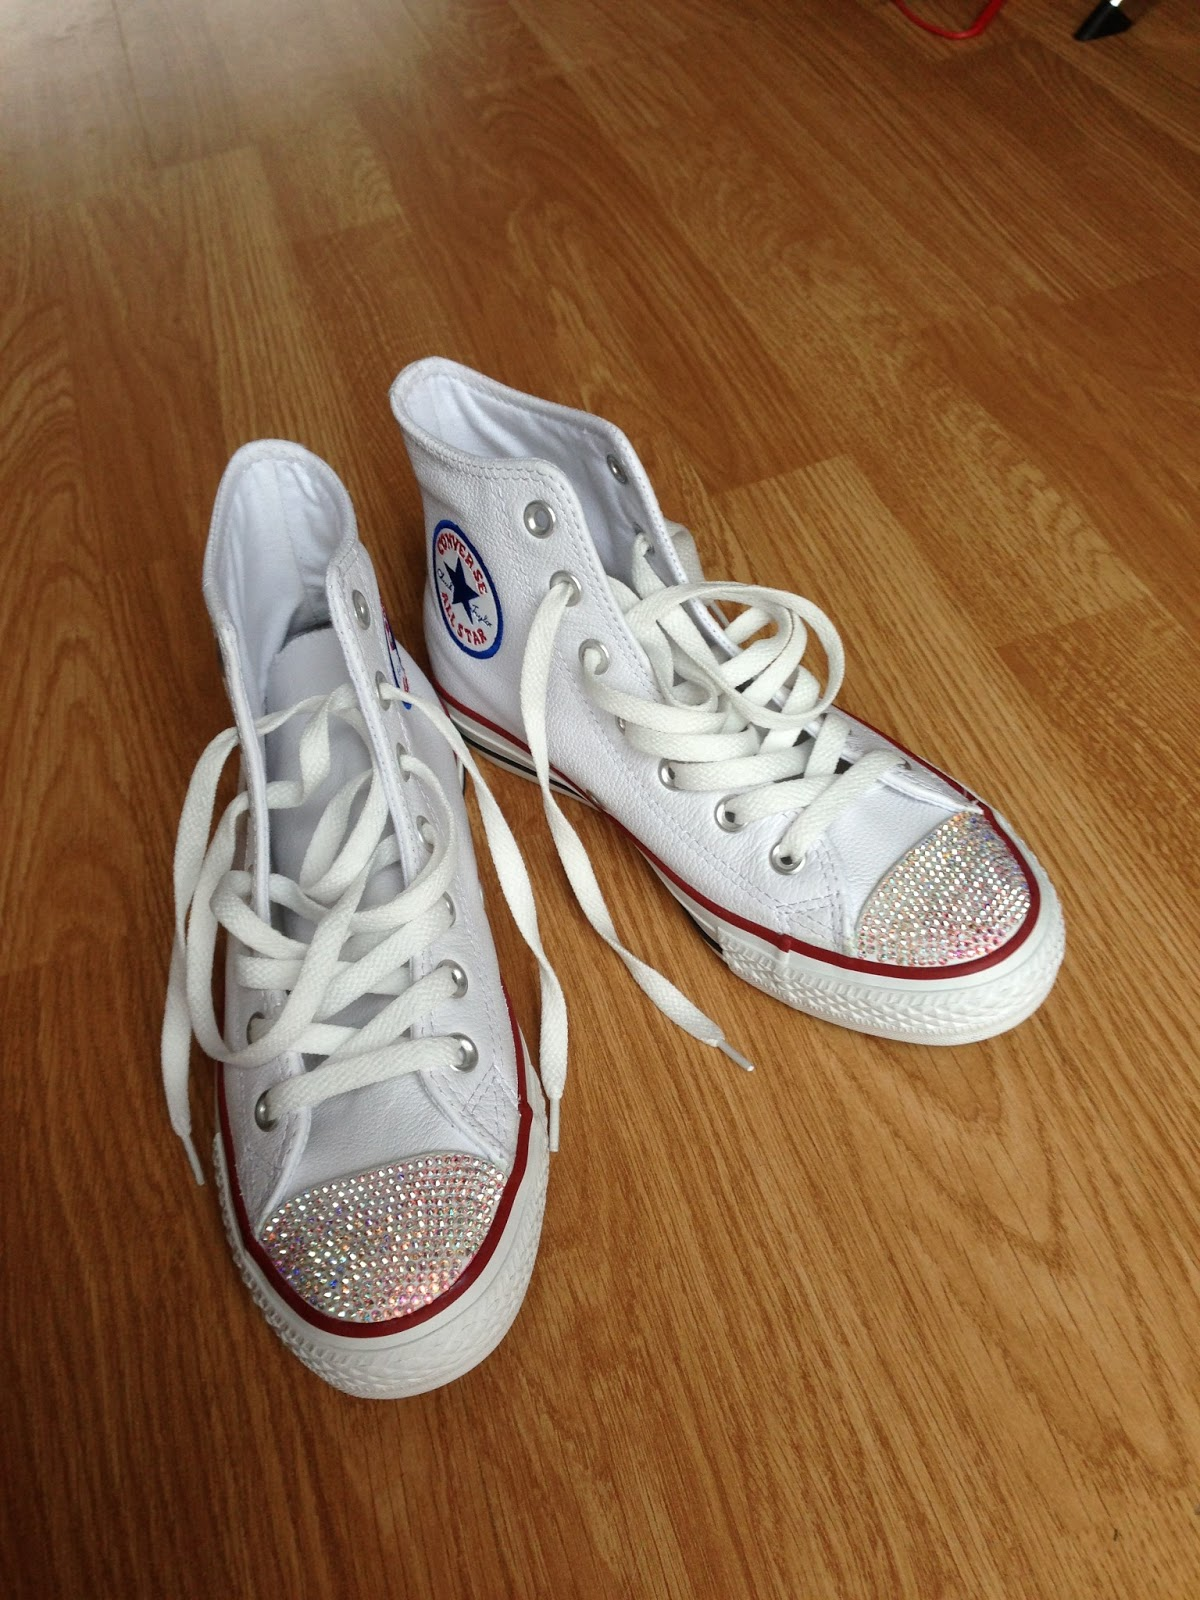 9a42bd52488c ... customising converse has always been a big thing. I guess it shows  uniquecity and adds a edge to your overall style. Lately swarovski gems  have been the ...